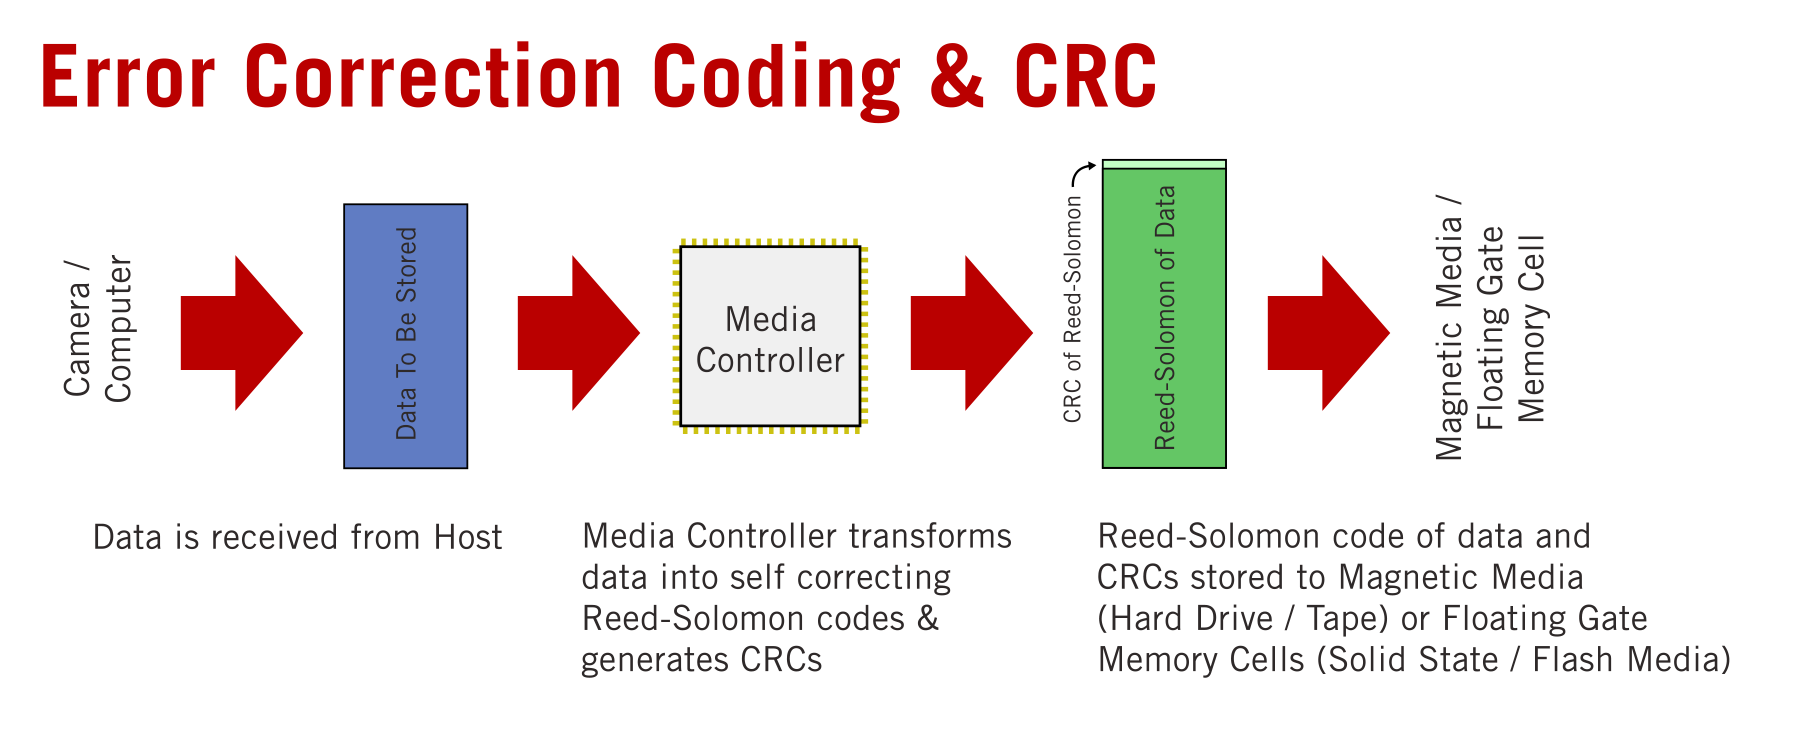 Error Correction Codes & CRCs are generated from the data when you write it to the media by the media controller.